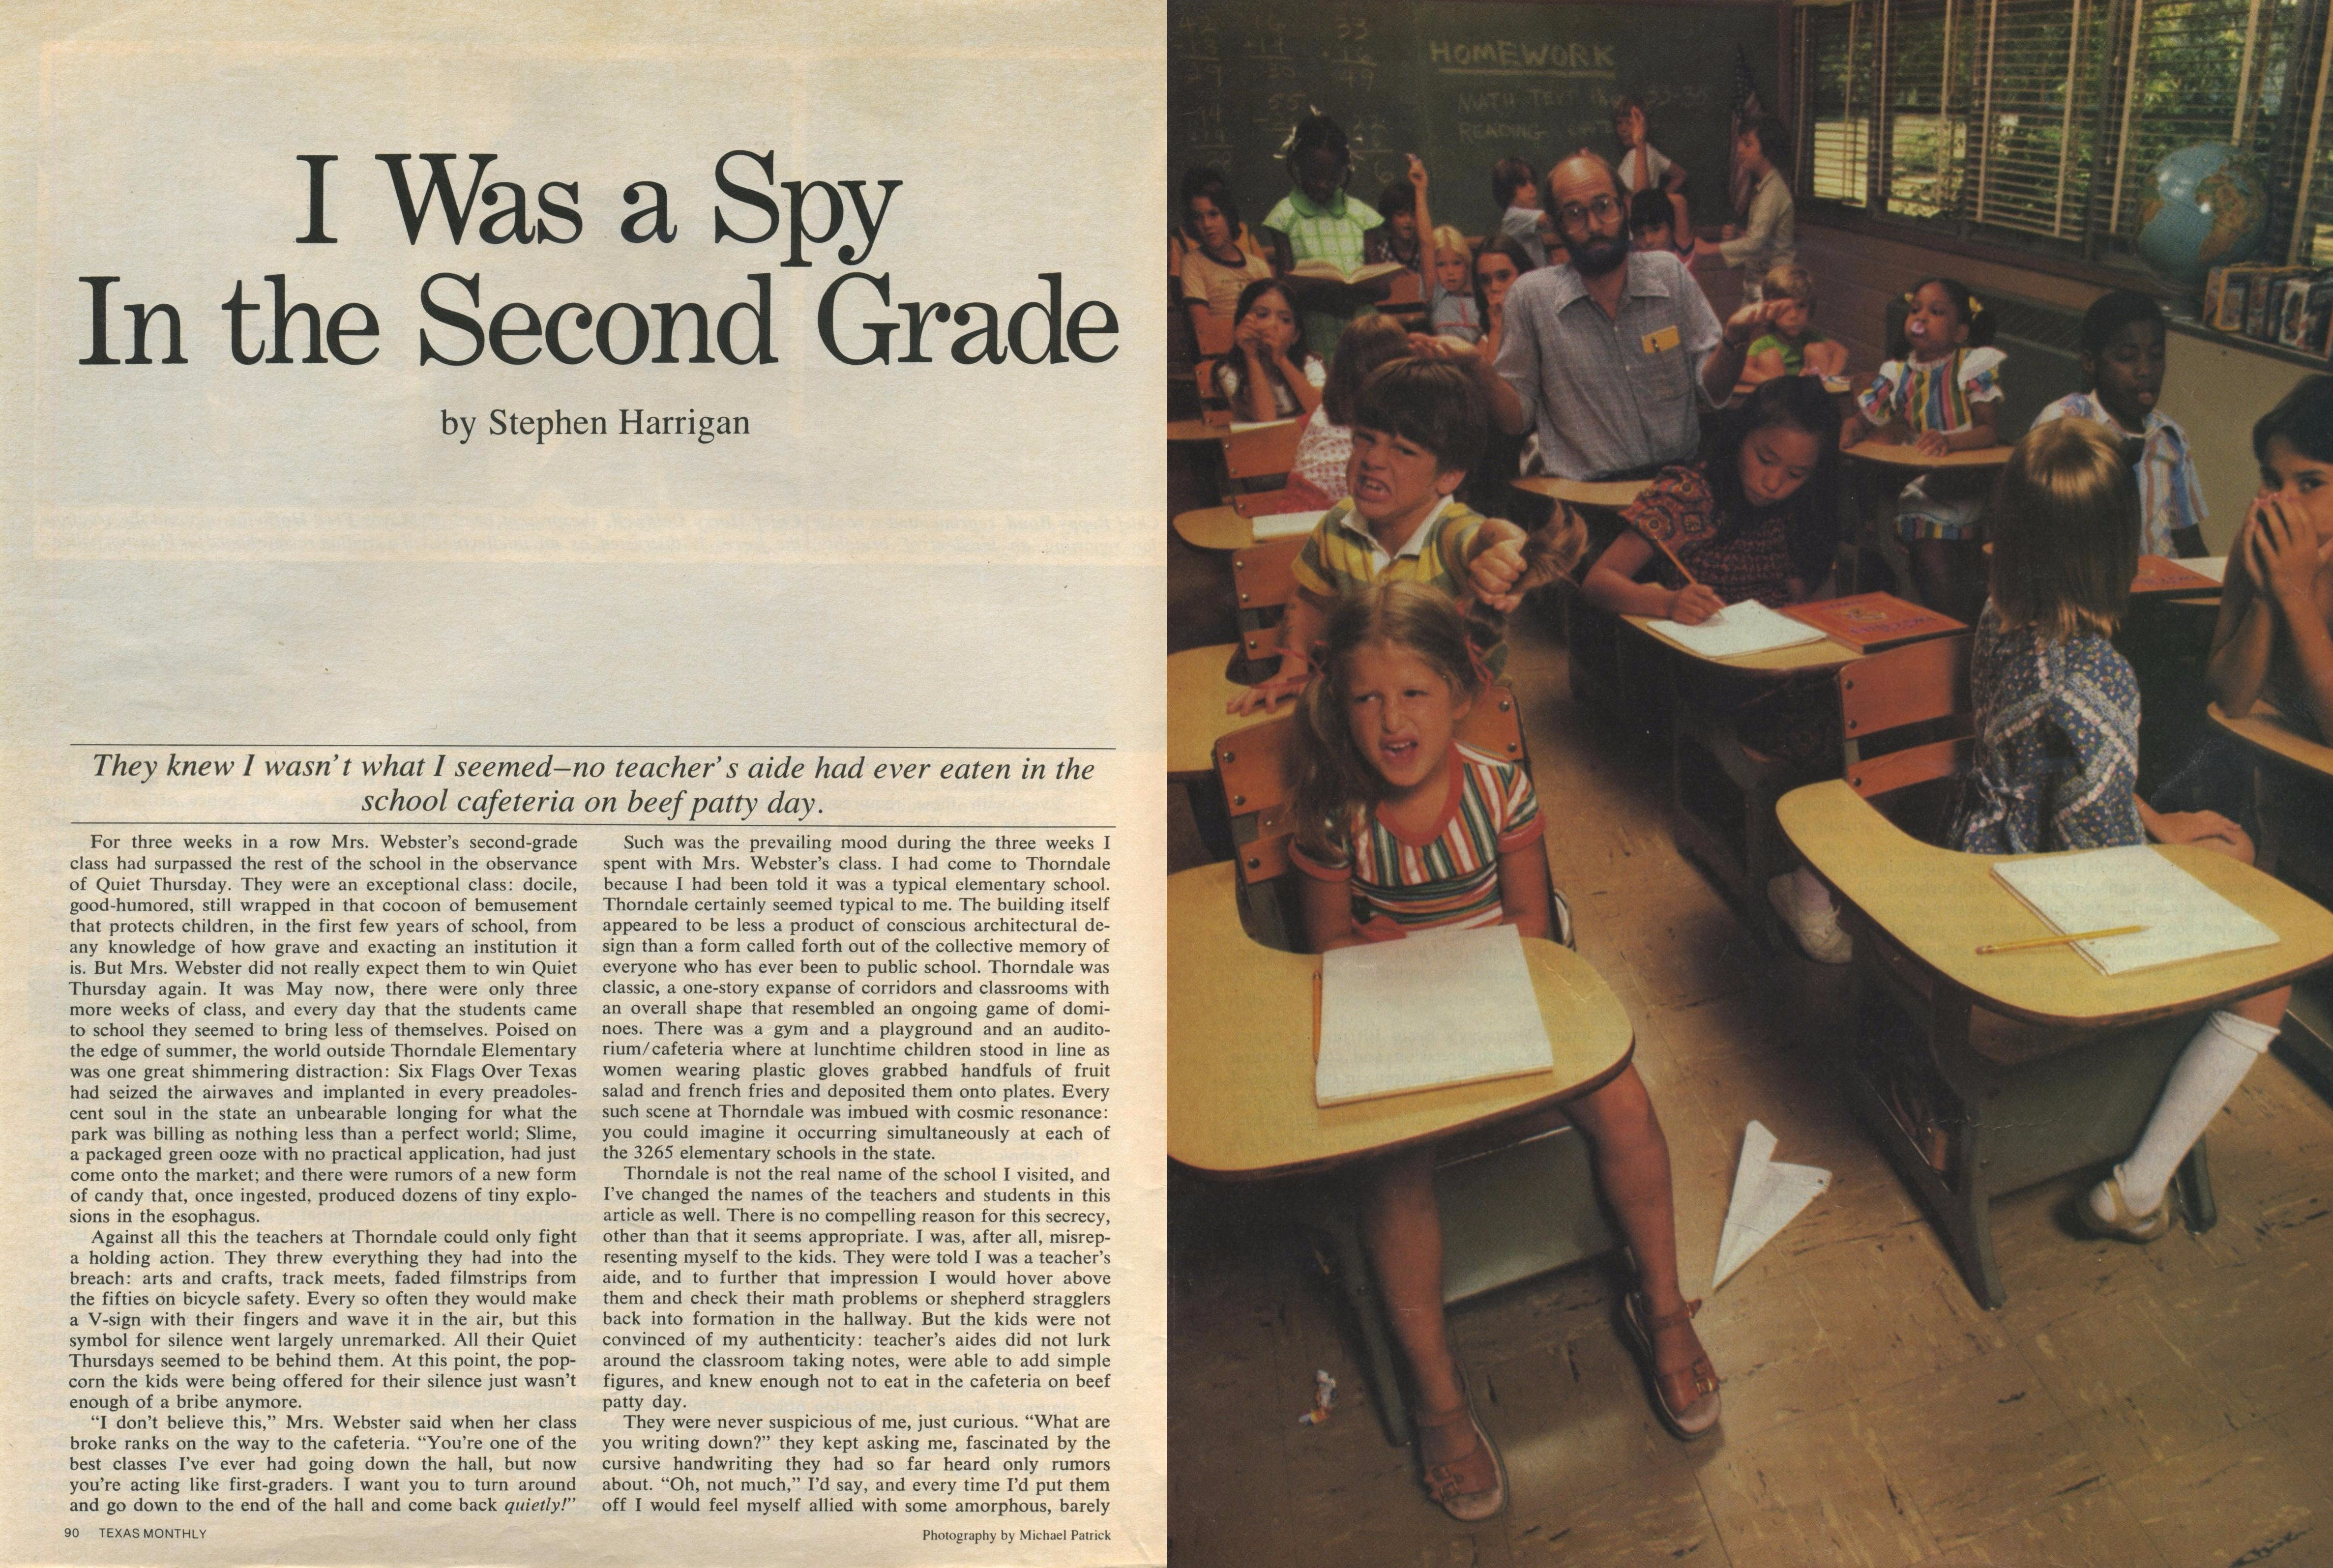 Second Grade Spy